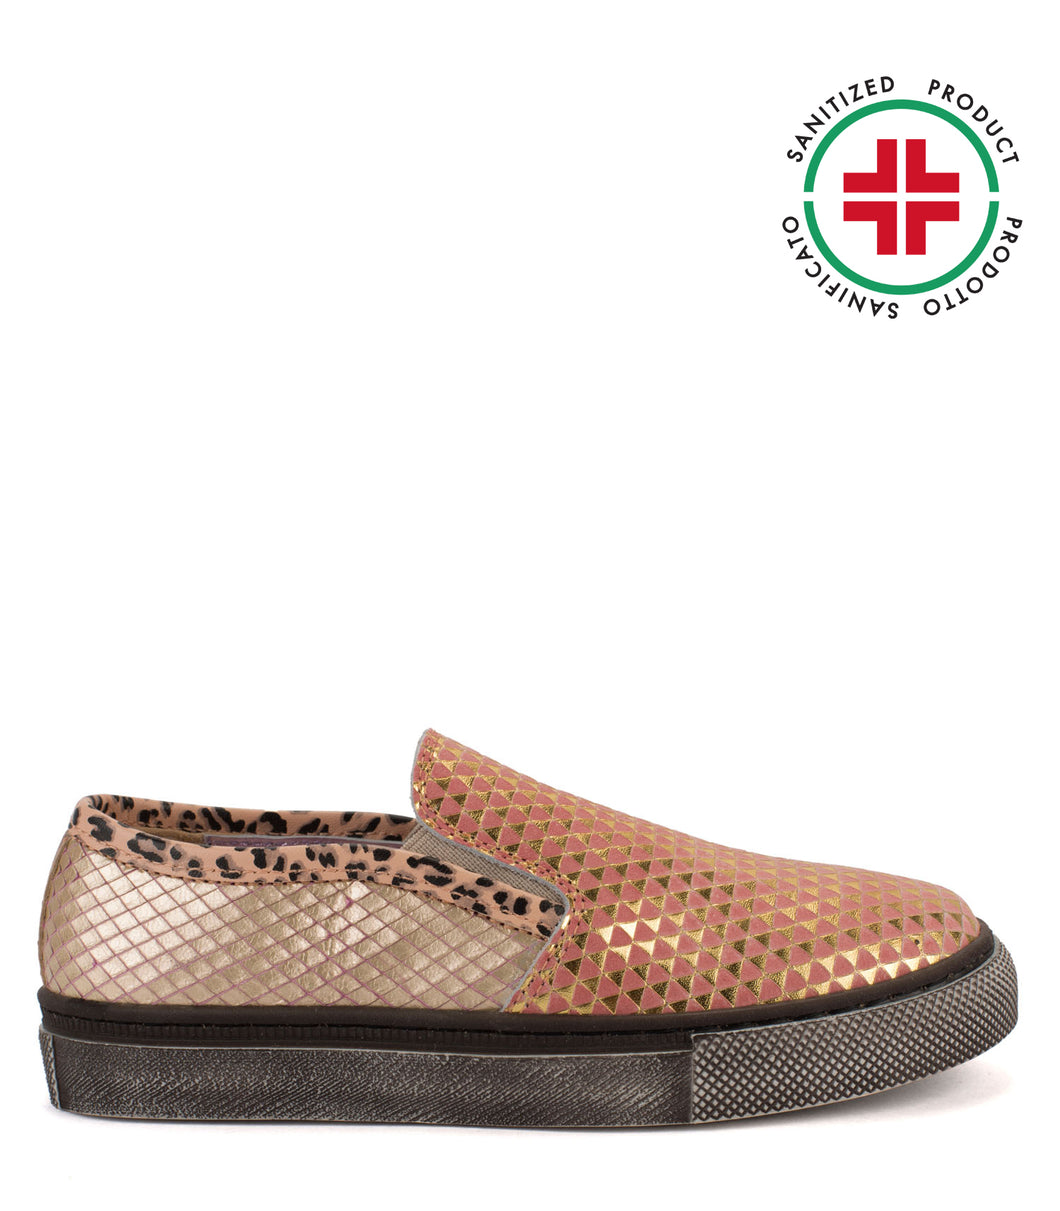 Multicolor leather slip-on